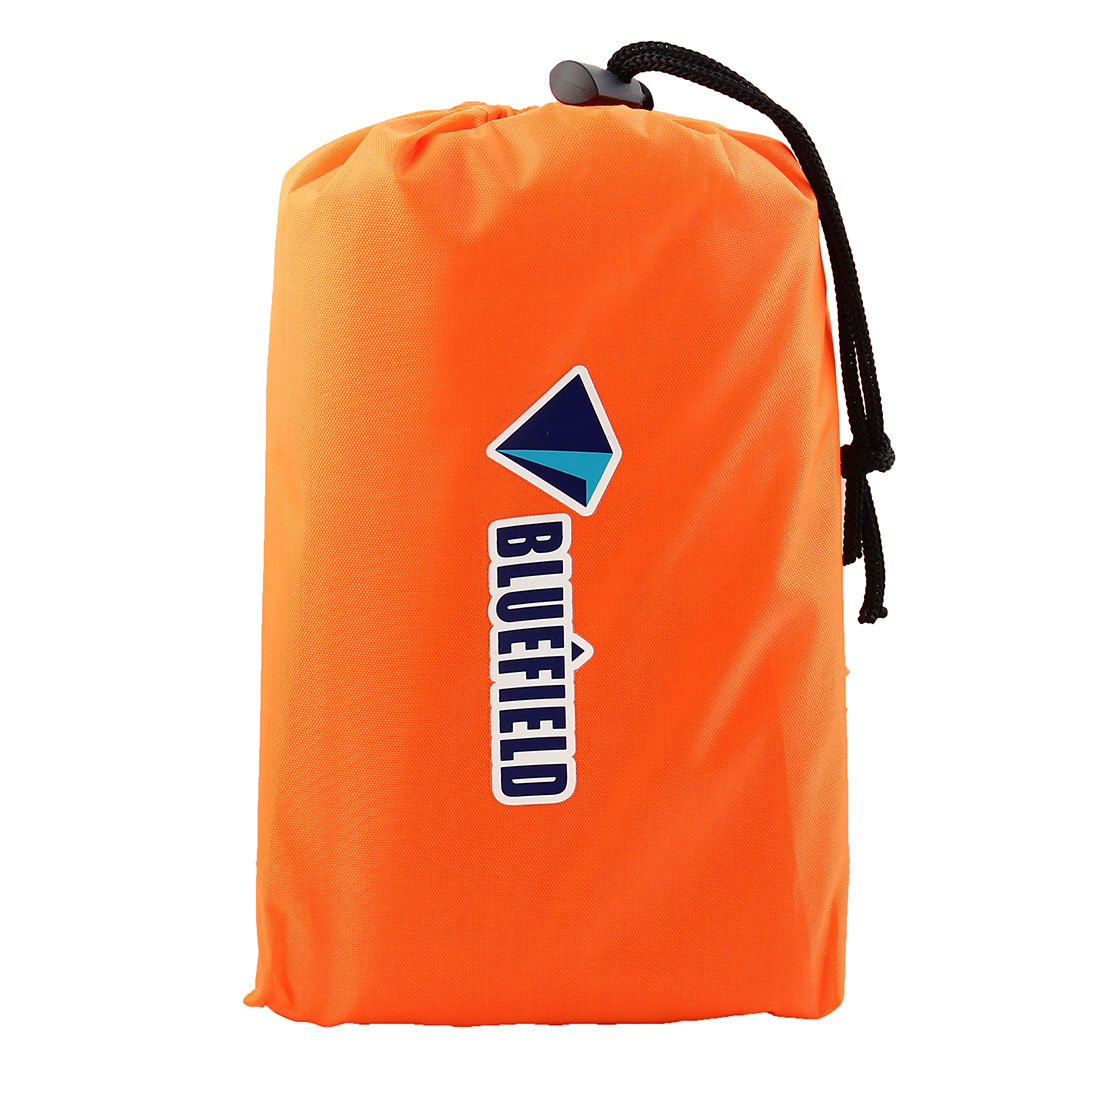 Bluefield Authorized Beach Outdoor Water Resistant Picnic Blanket Foldable Camping Mat Pad Orange